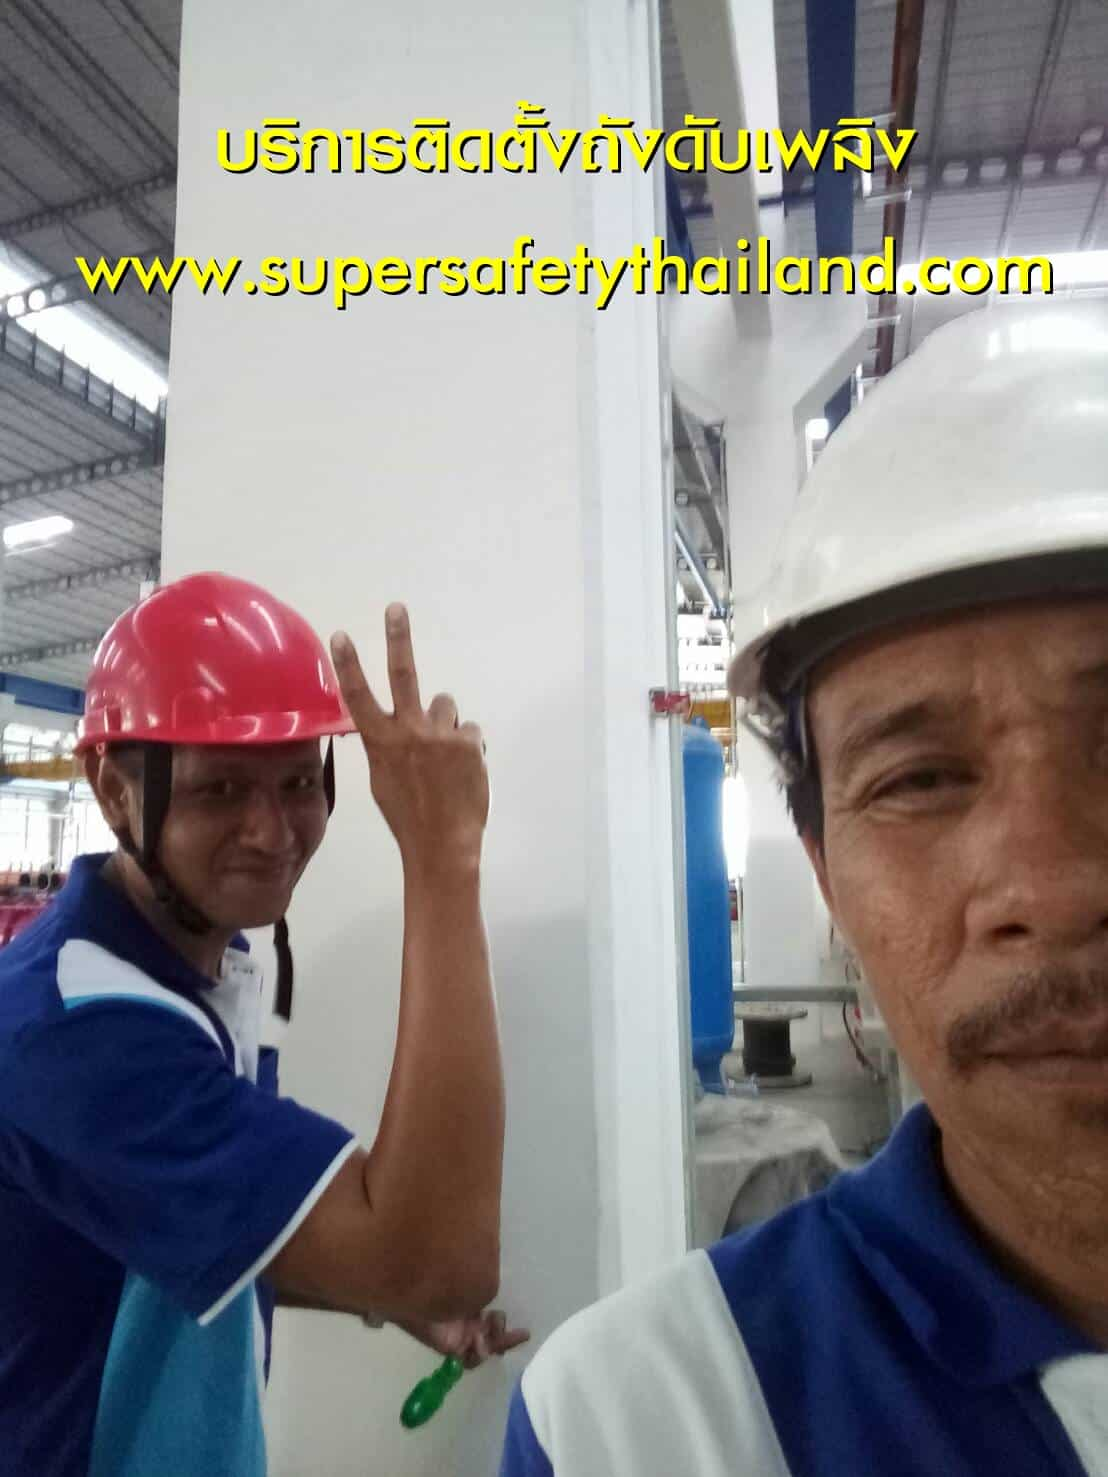 http://www.supersafetythailand.com/wp-content/uploads/2018/11/%E0%B8%9A%E0%B8%A3%E0%B8%B4%E0%B8%81%E0%B8%B2%E0%B8%A3%E0%B8%95%E0%B8%B4%E0%B8%94%E0%B8%95%E0%B8%B1%E0%B9%89%E0%B8%87%E0%B8%96%E0%B8%B1%E0%B8%87%E0%B8%94%E0%B8%B1%E0%B8%9A%E0%B9%80%E0%B8%9E%E0%B8%A5%E0%B8%B4%E0%B8%87-2.jpg